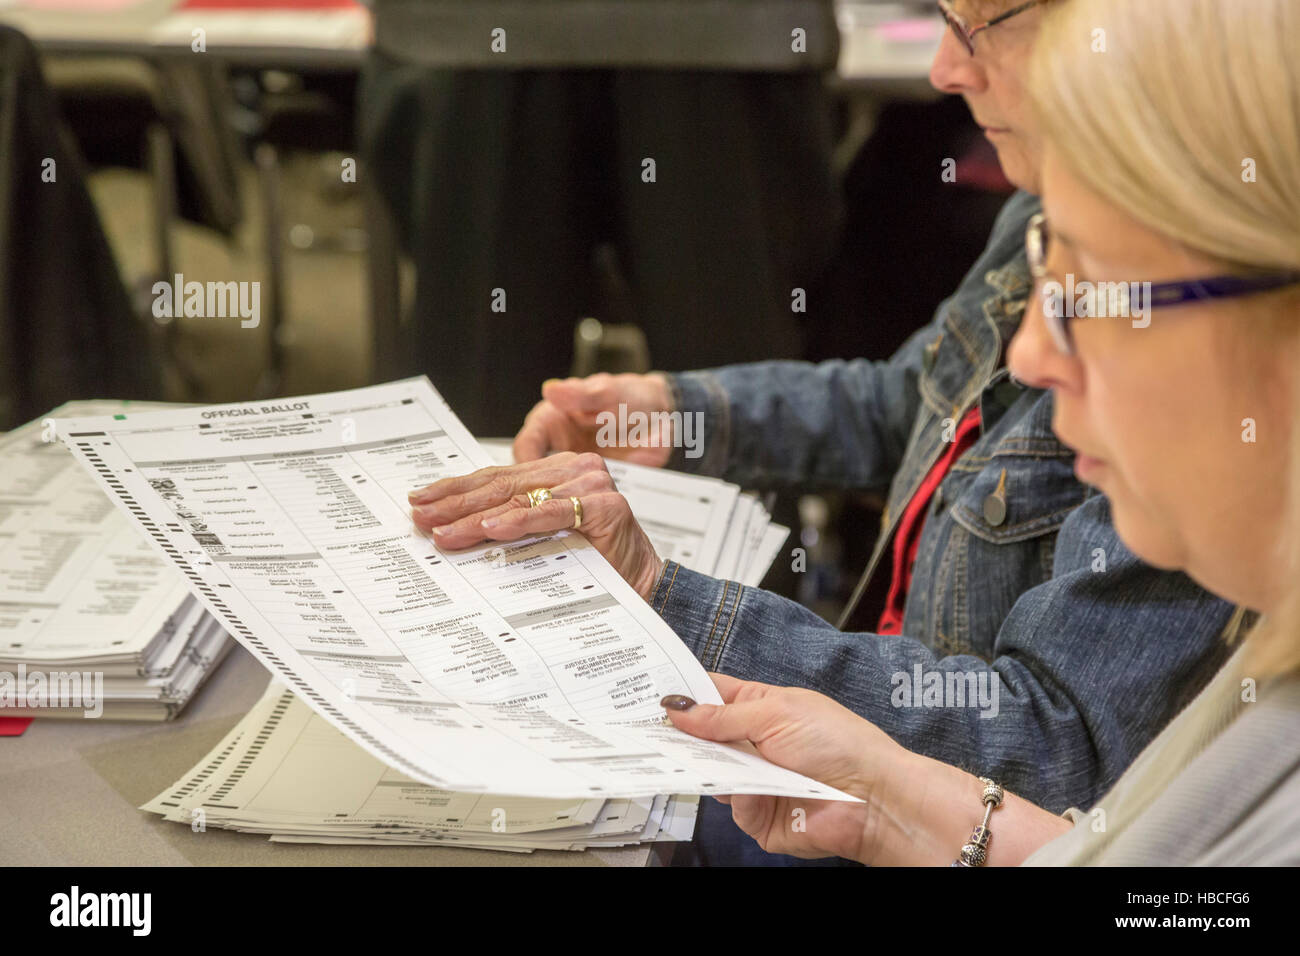 Michigan, USA. 5th December, 2016.Workers in Oakland County, Michigan recount ballots cast in the 2016 Presidential - Stock Image